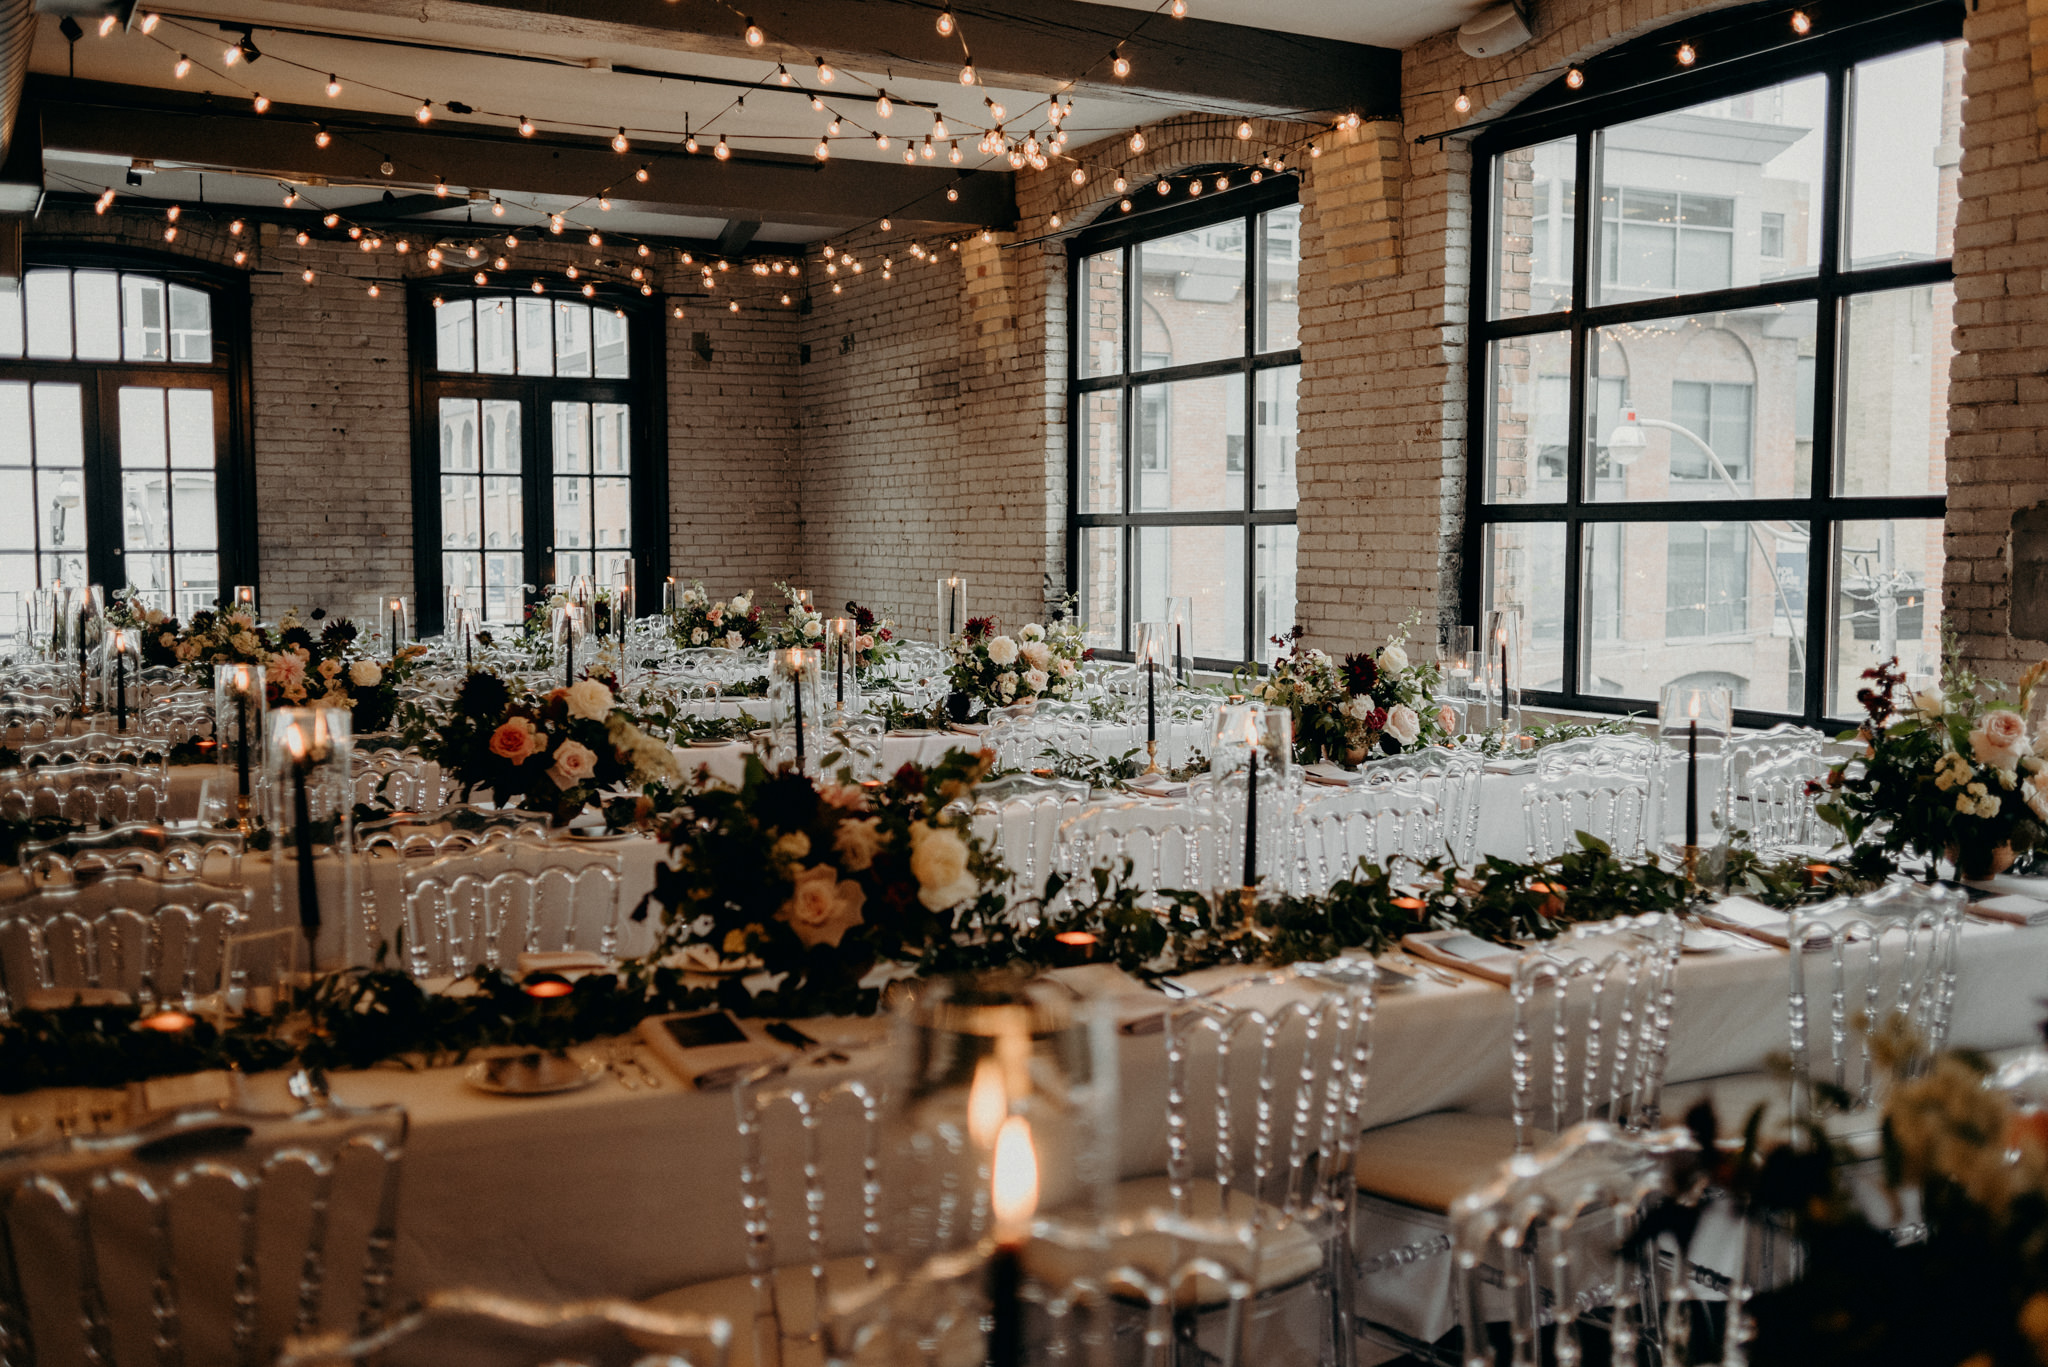 Romantic Storys Building wedding reception setup with string lights and candles on table